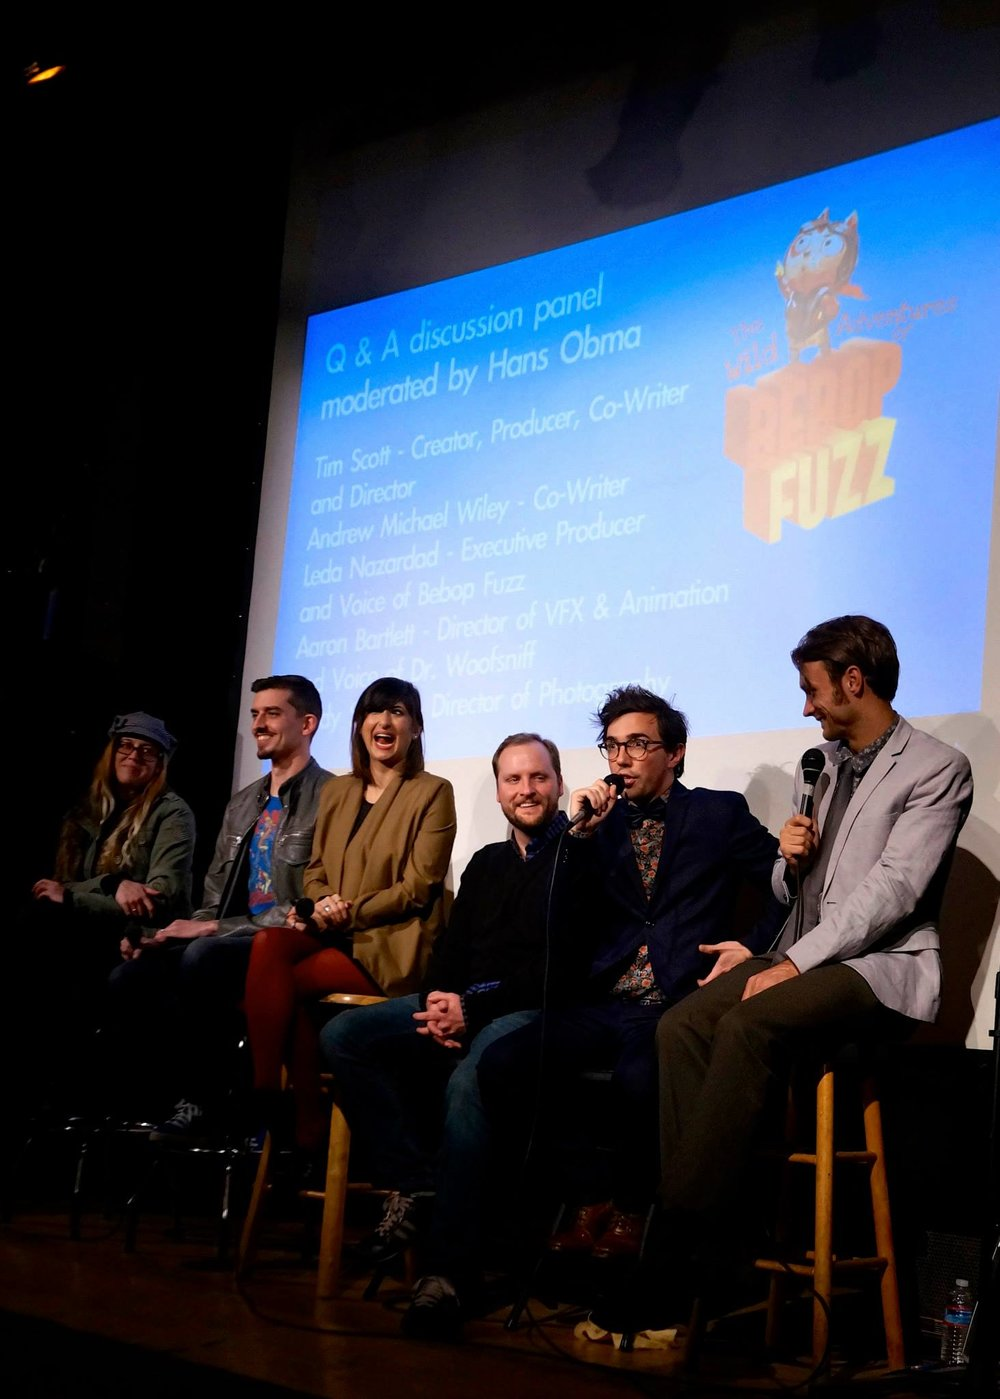 The team behind The Wild Adventure of Bebop Fuzz at the L.A. premiere at Art Share L.A., Winter 2014. Photo by Michelle Young.